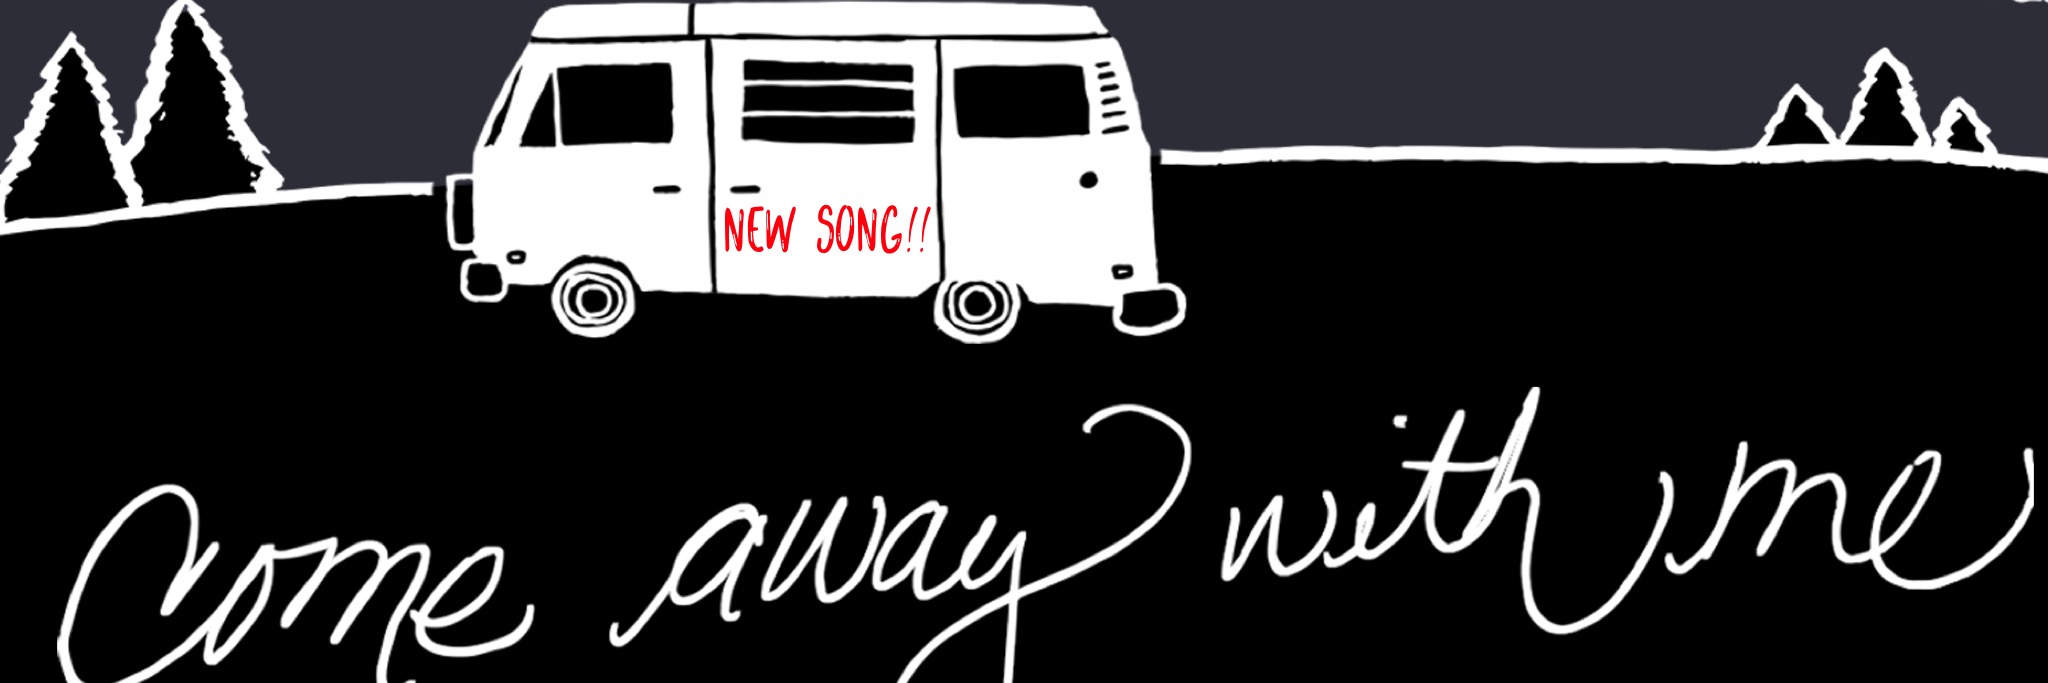 Come Away With Me Banner